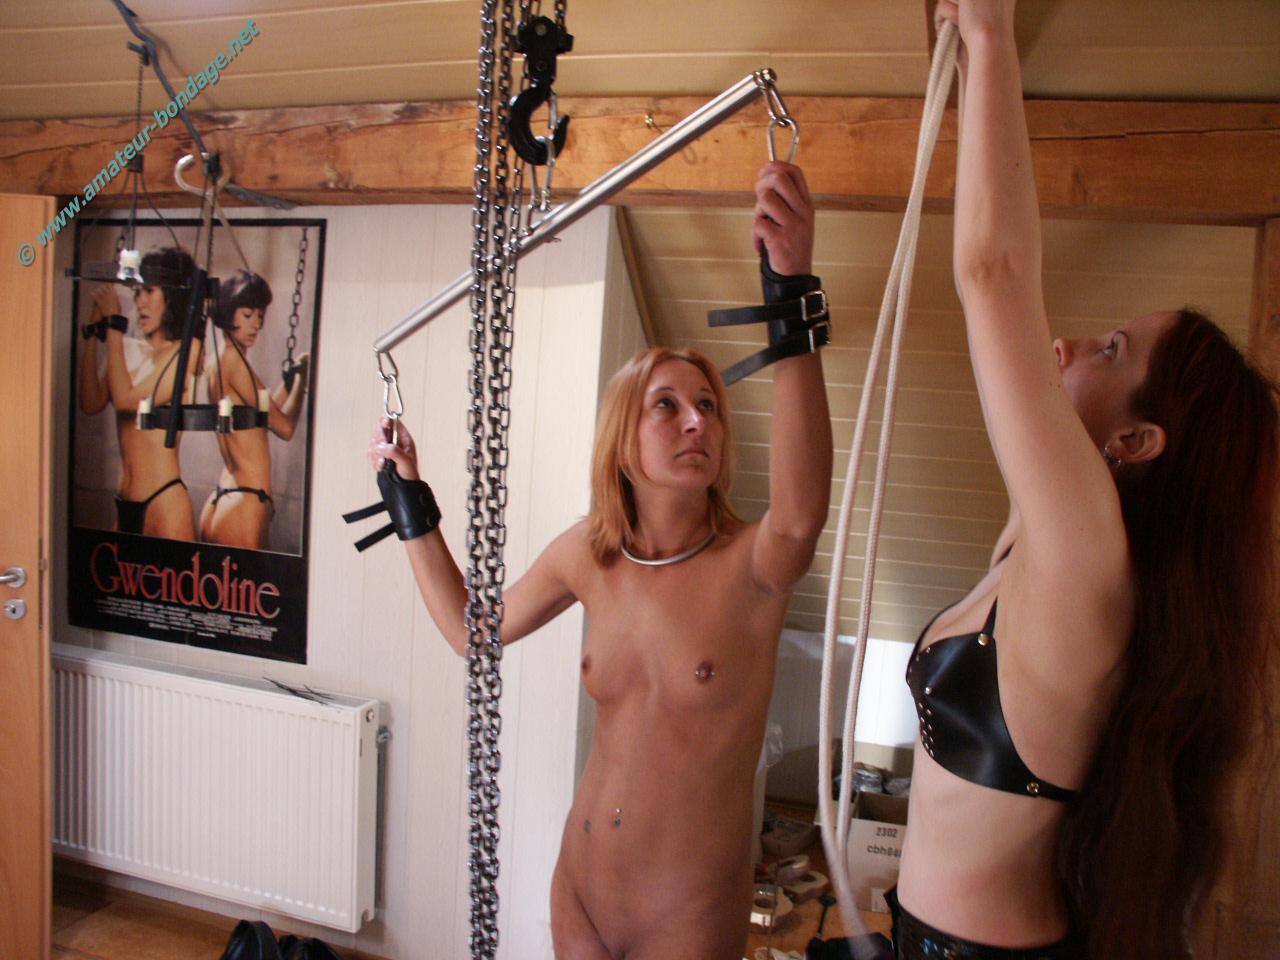 Amateur bondage of suspended lexy tied up in creative rope rigging 4